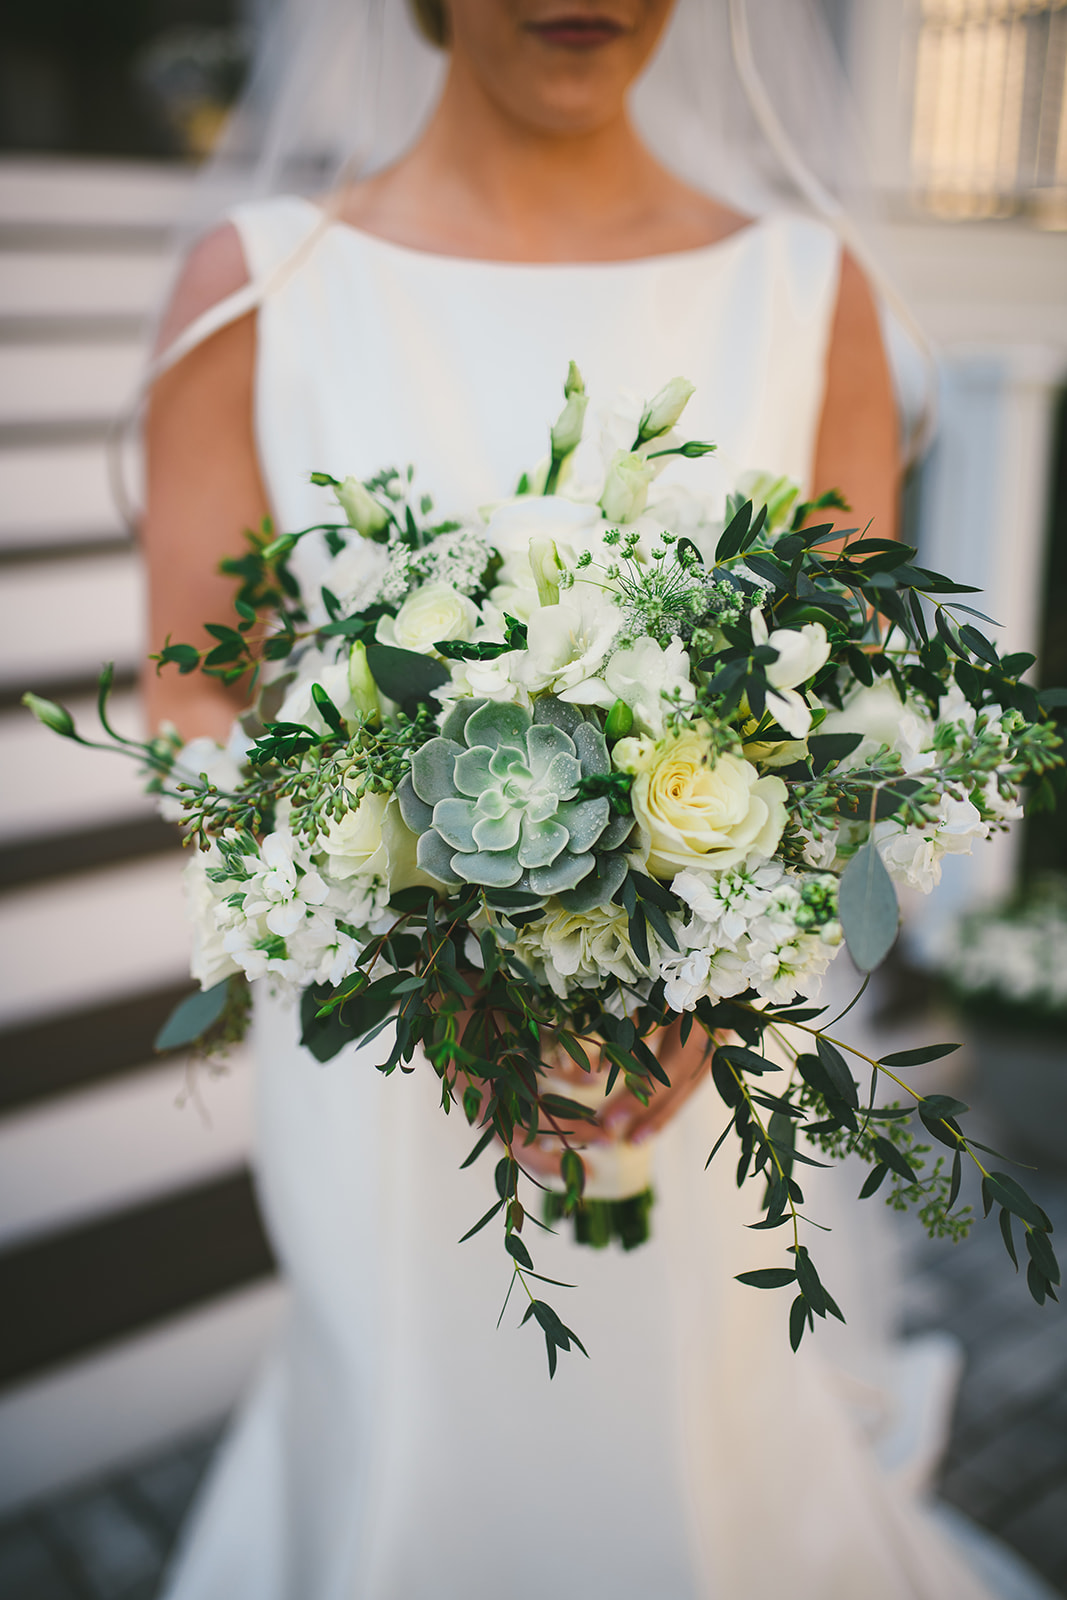 26 Bride holding summer wedding flowers.jpg